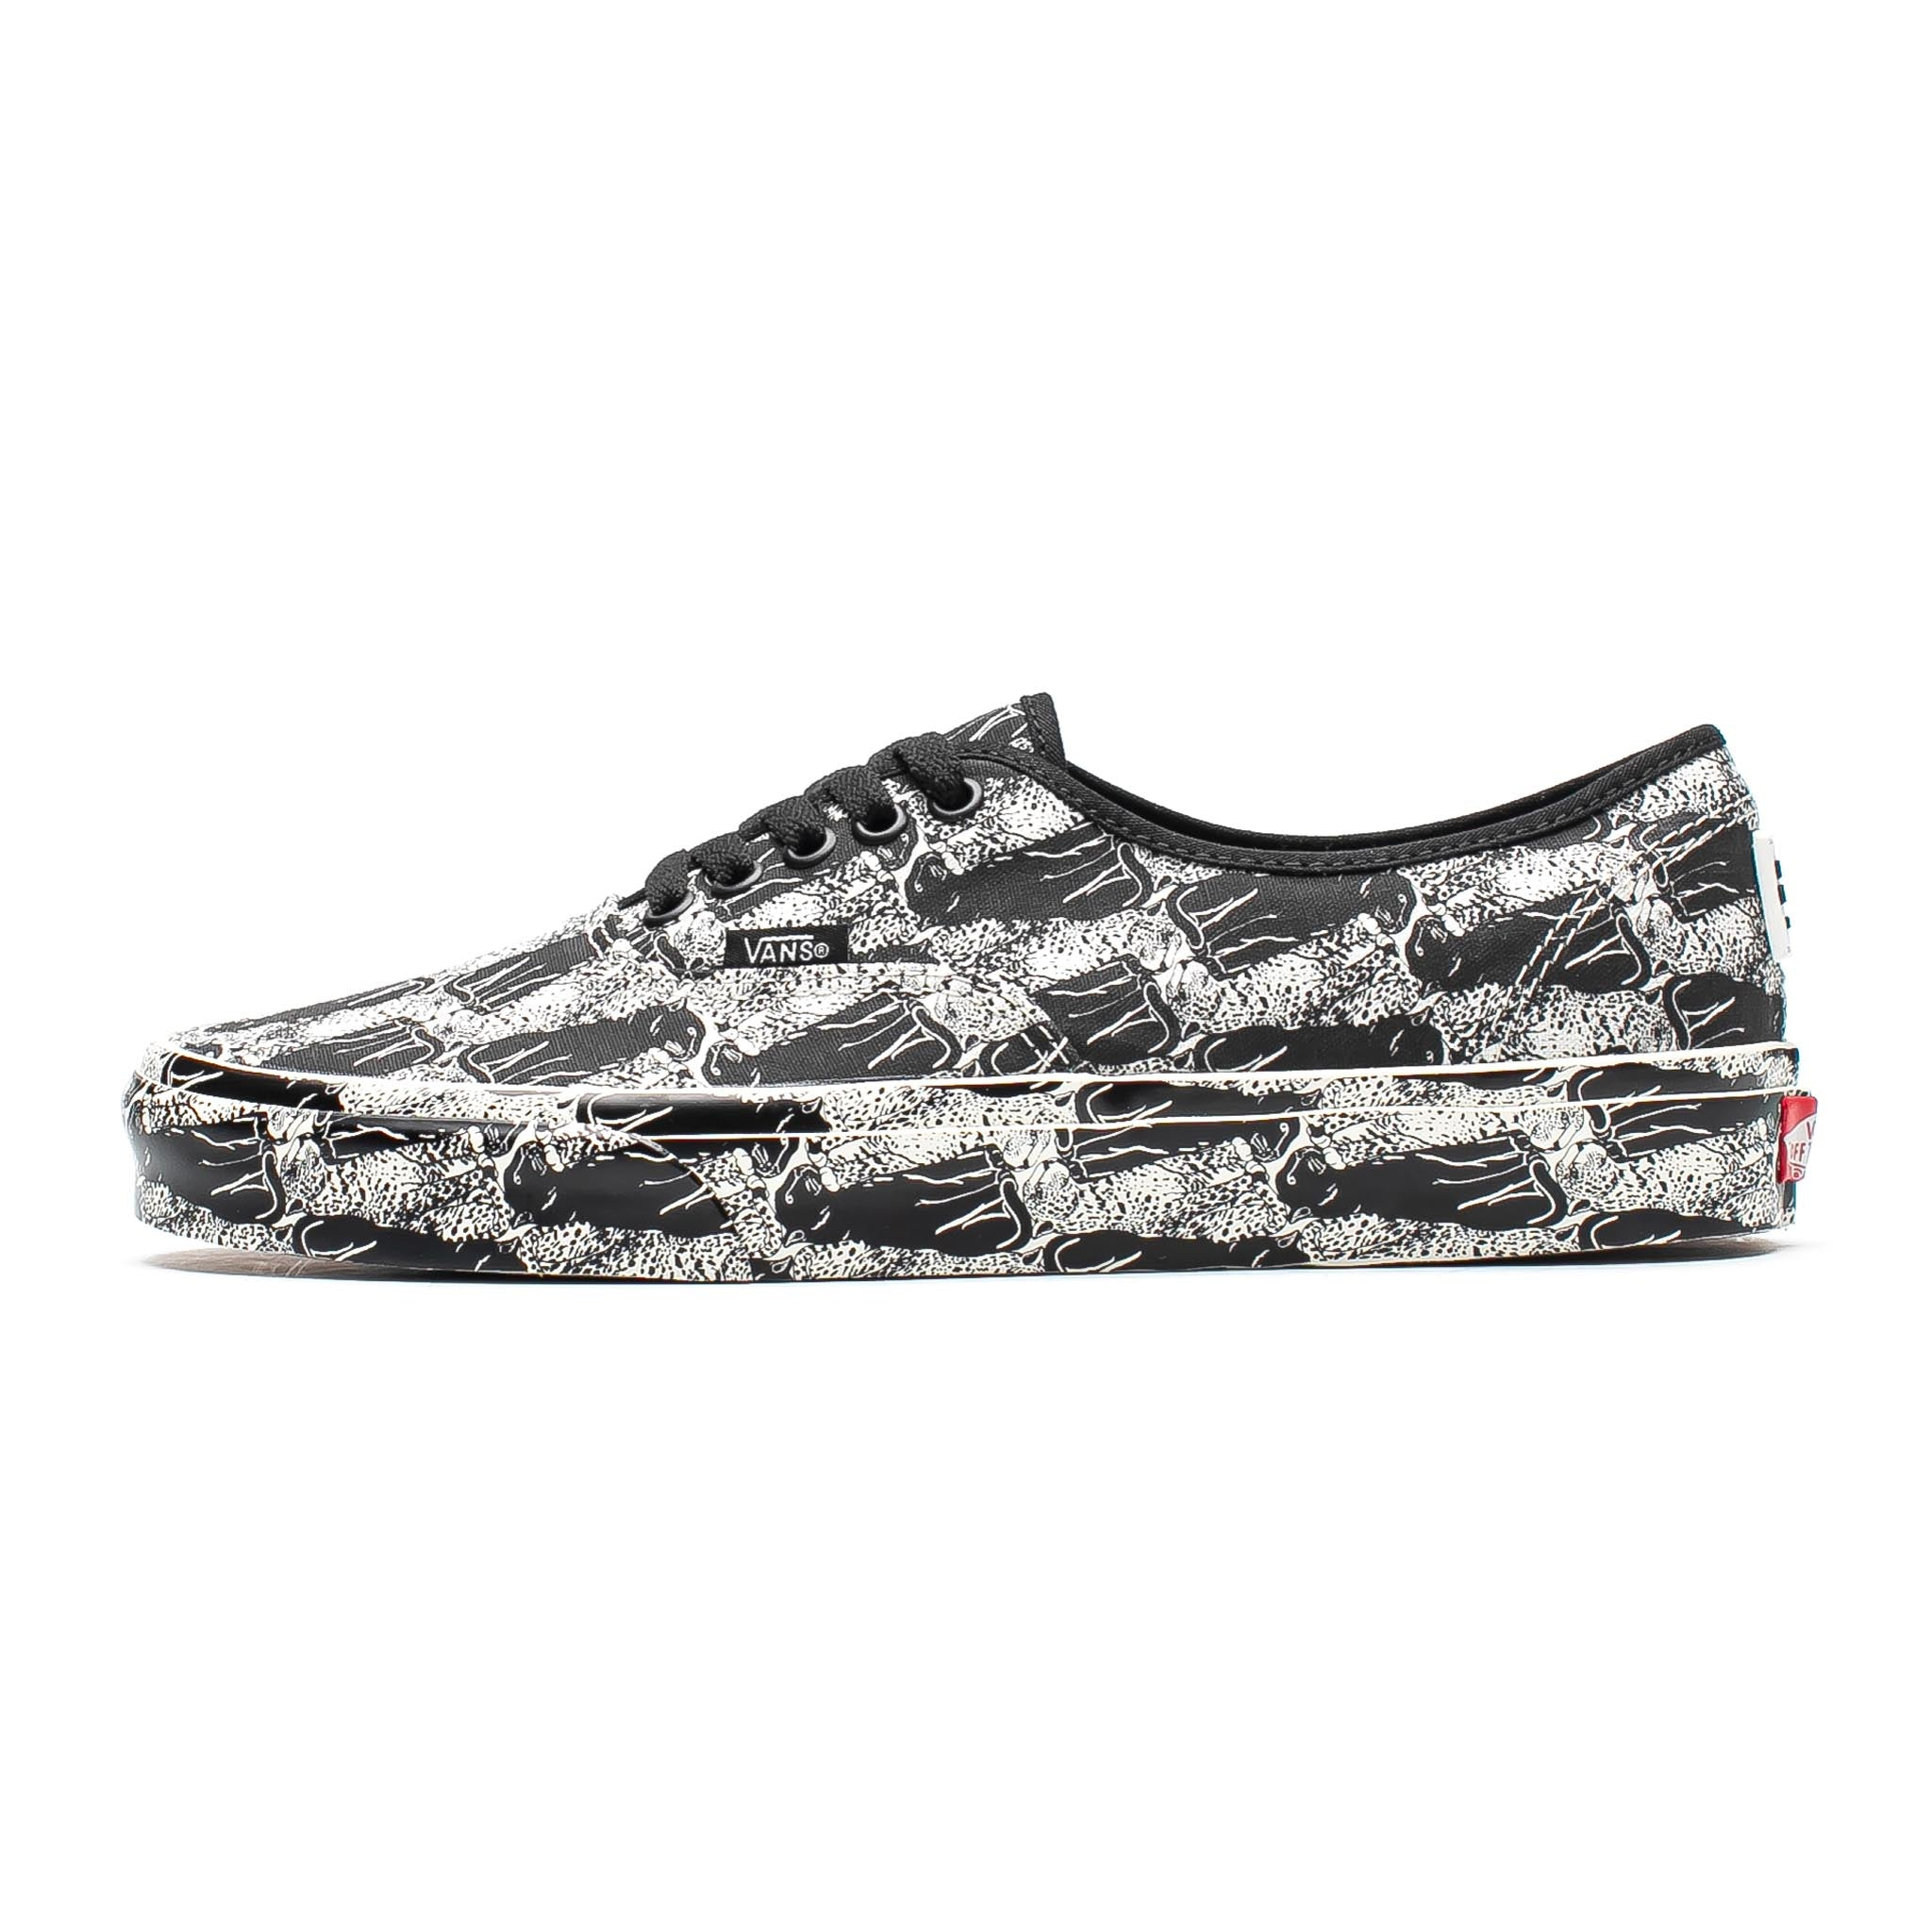 Vans x Opening Ceremony Authentic Black